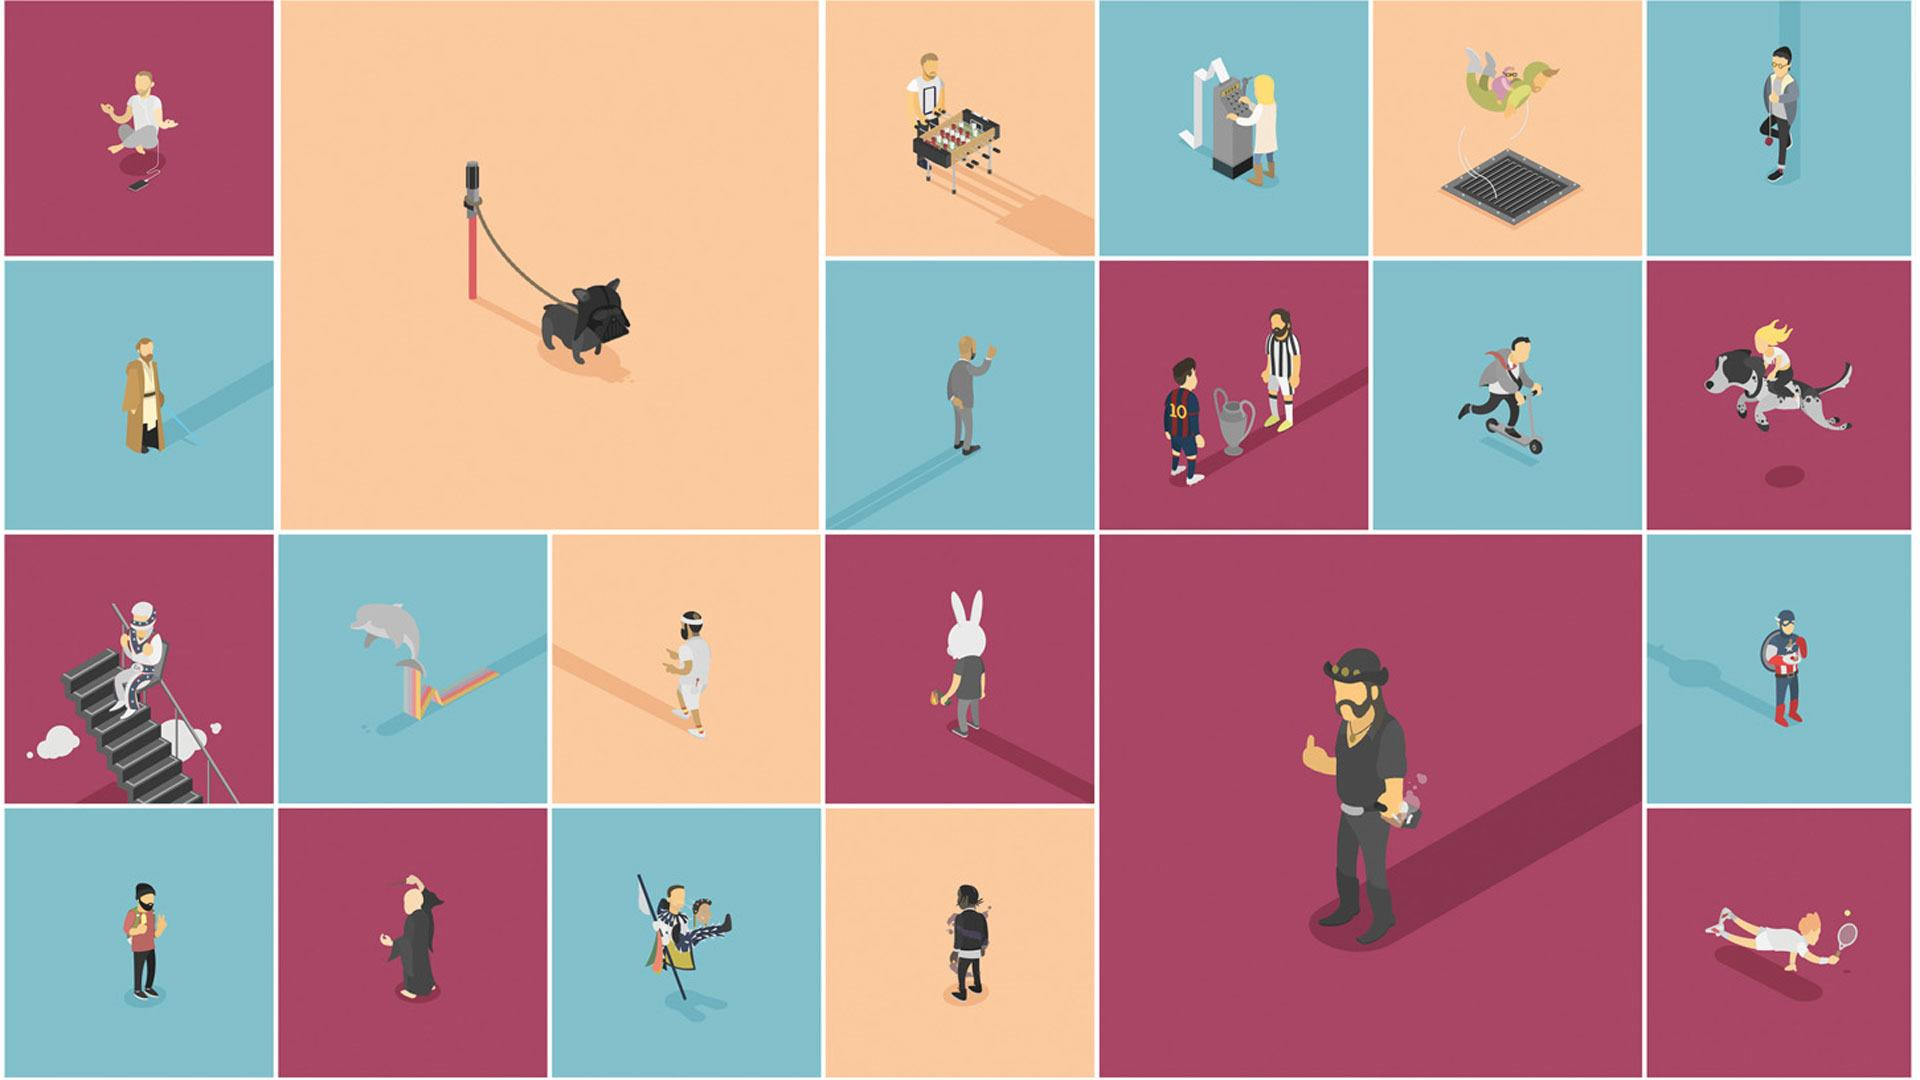 Minimally cute character designs infiltrate Instagram